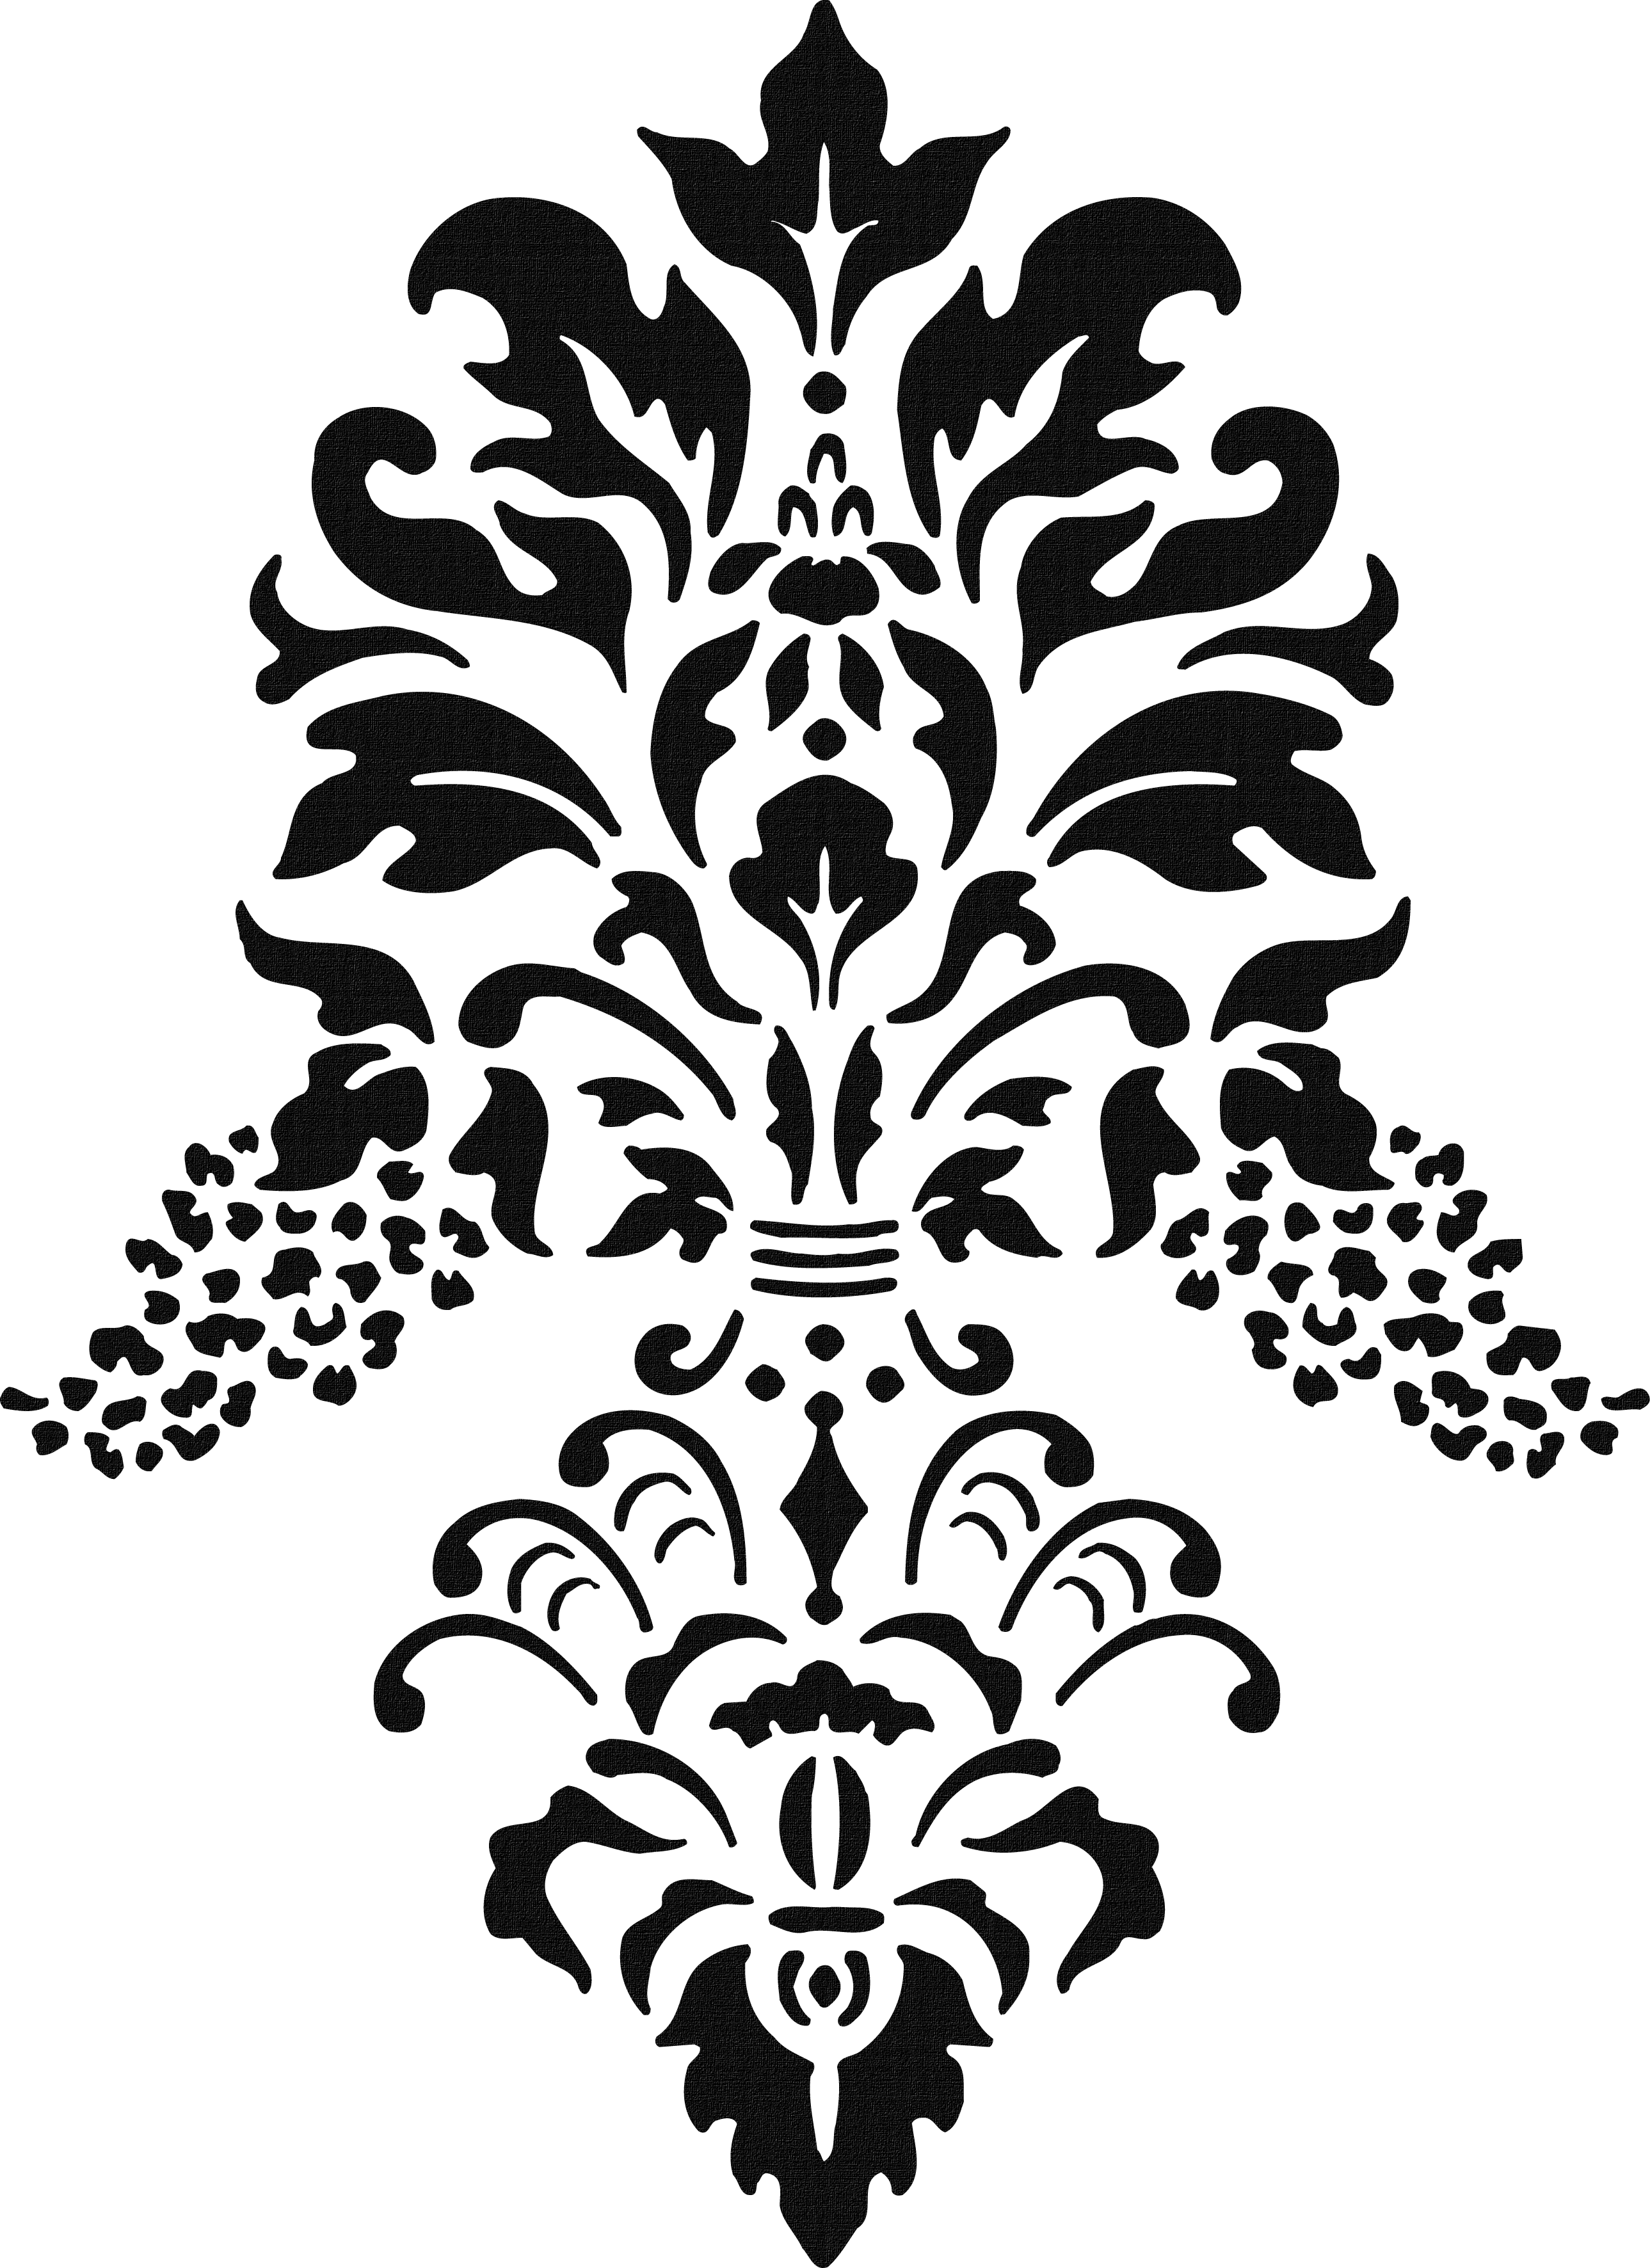 Lace stencil. Clipart transparent free for